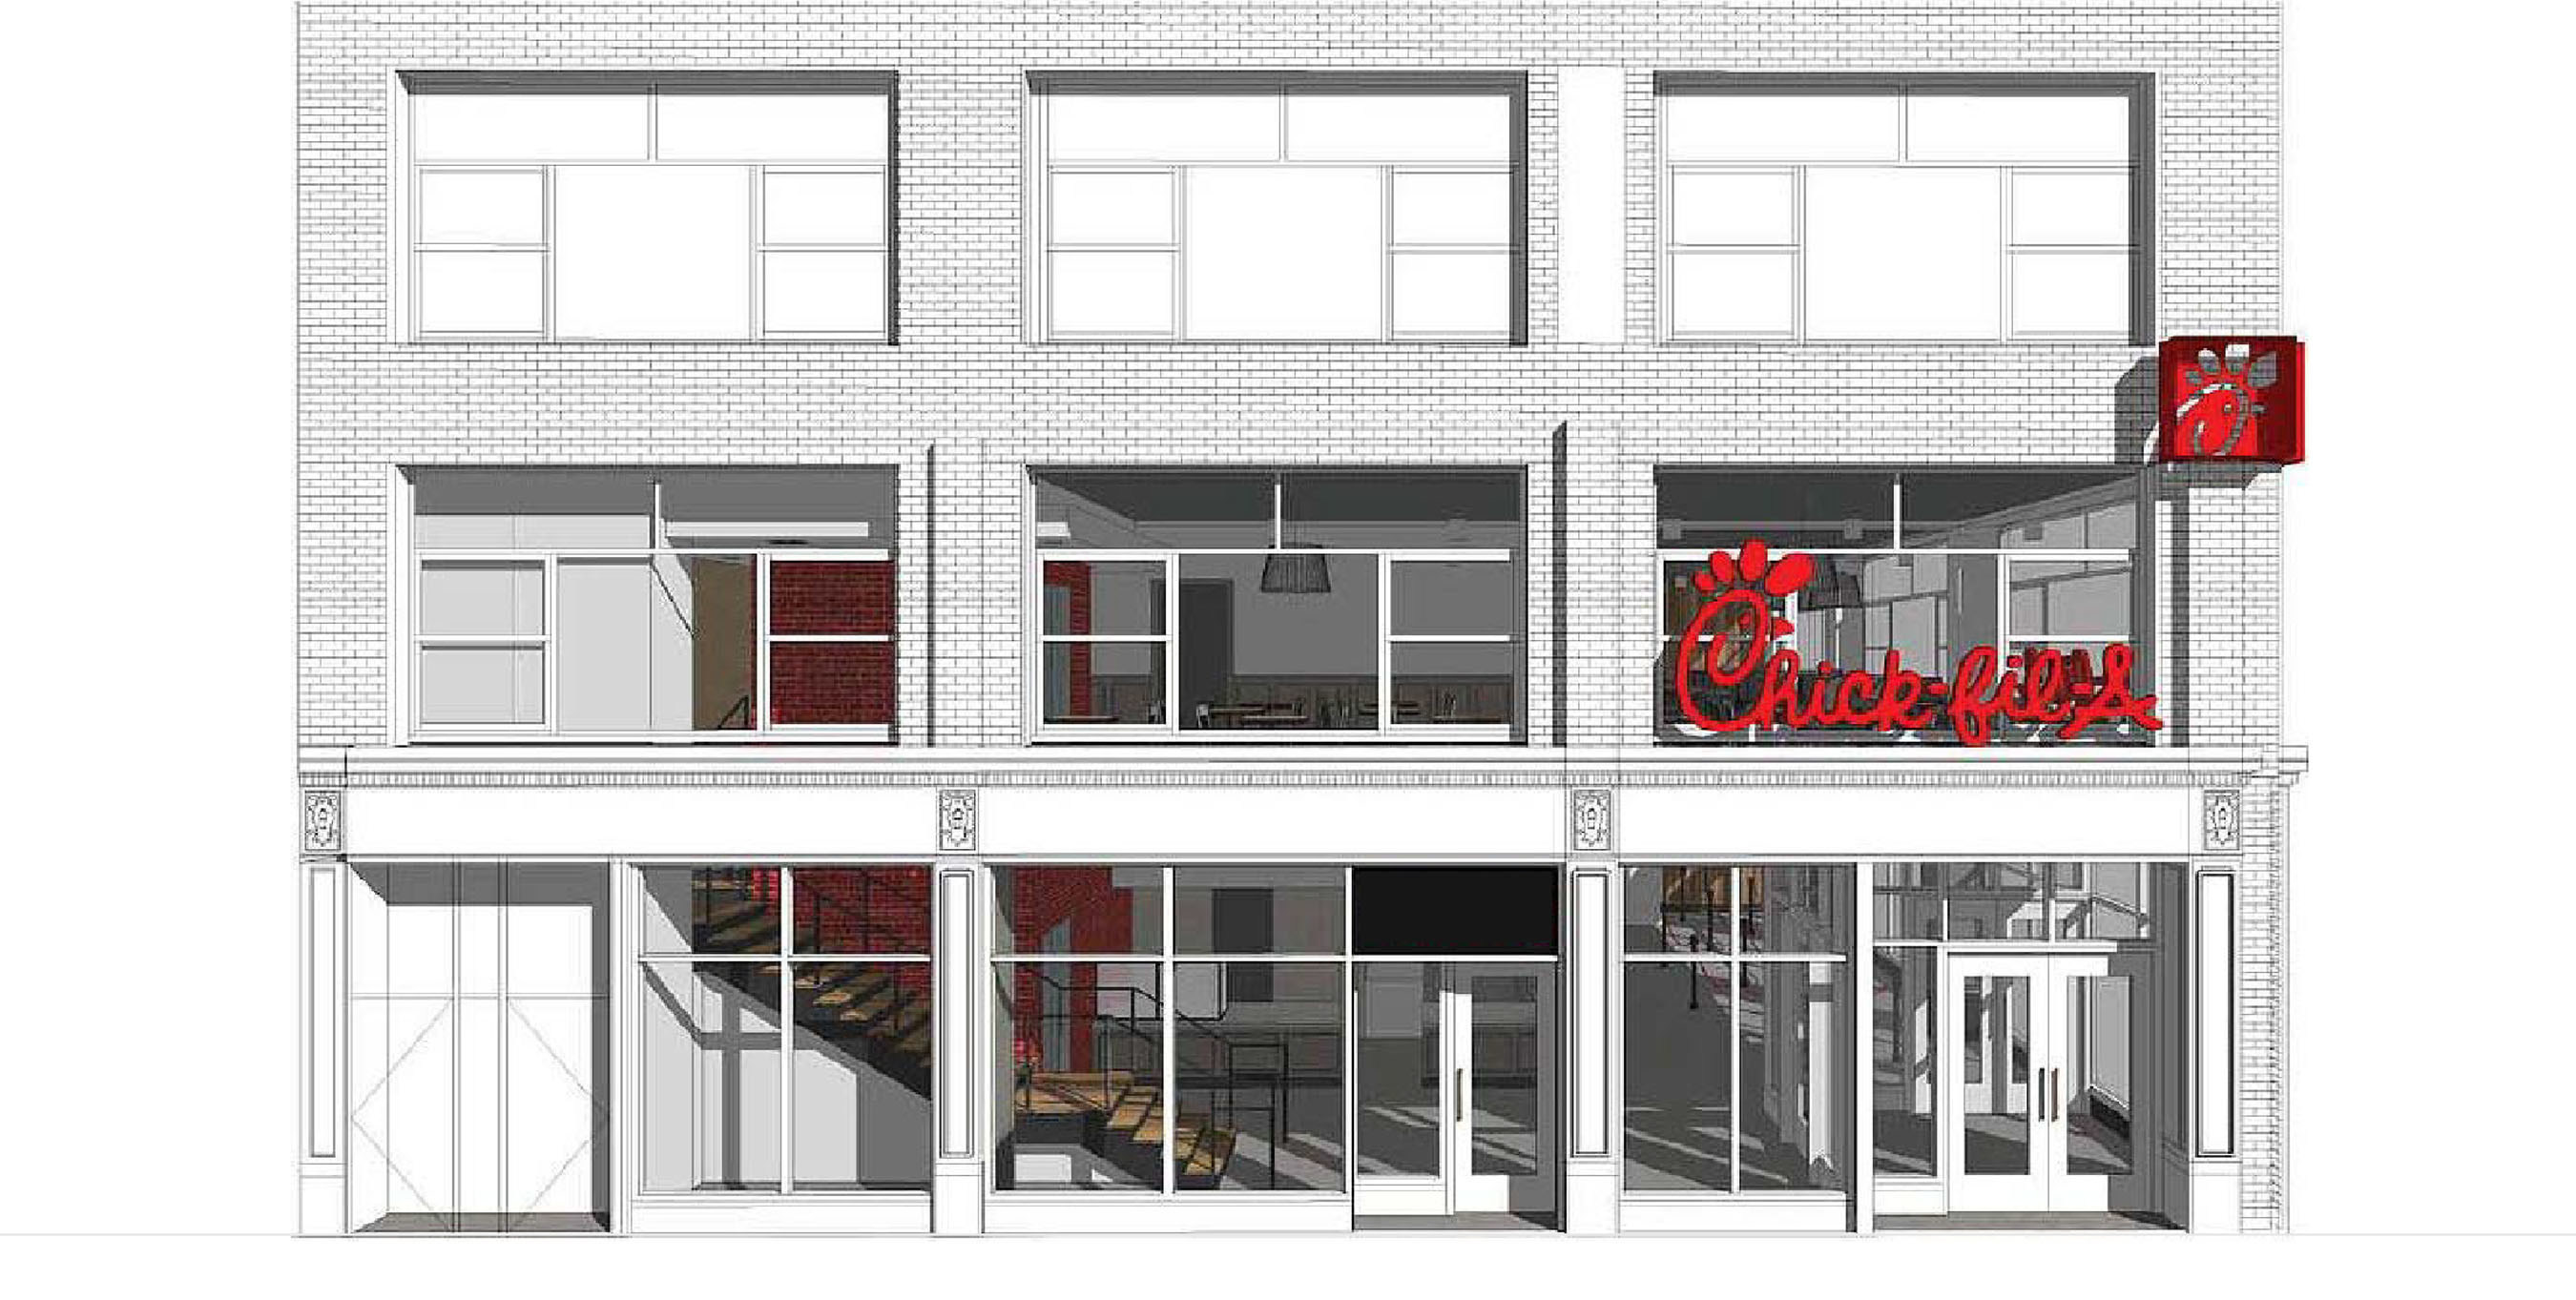 Rendering of Chick-fil-A at 37th and 6th, the first freestanding Chick-fil-A restaurant in New York City, which is set to open in the Garment District on October 3, 2015.